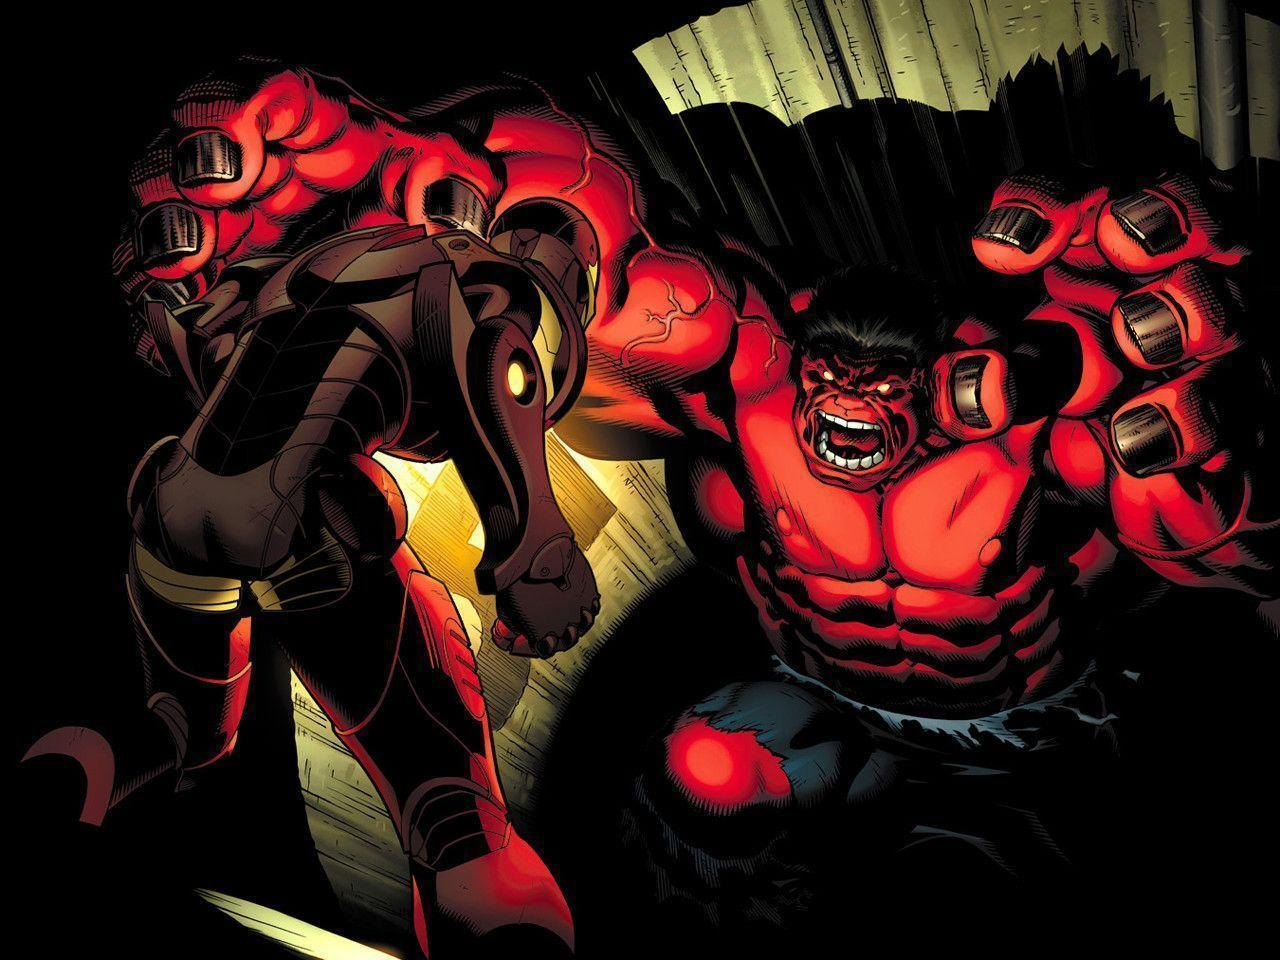 RED HULK : Desktop and mobile wallpapers : Wallippo